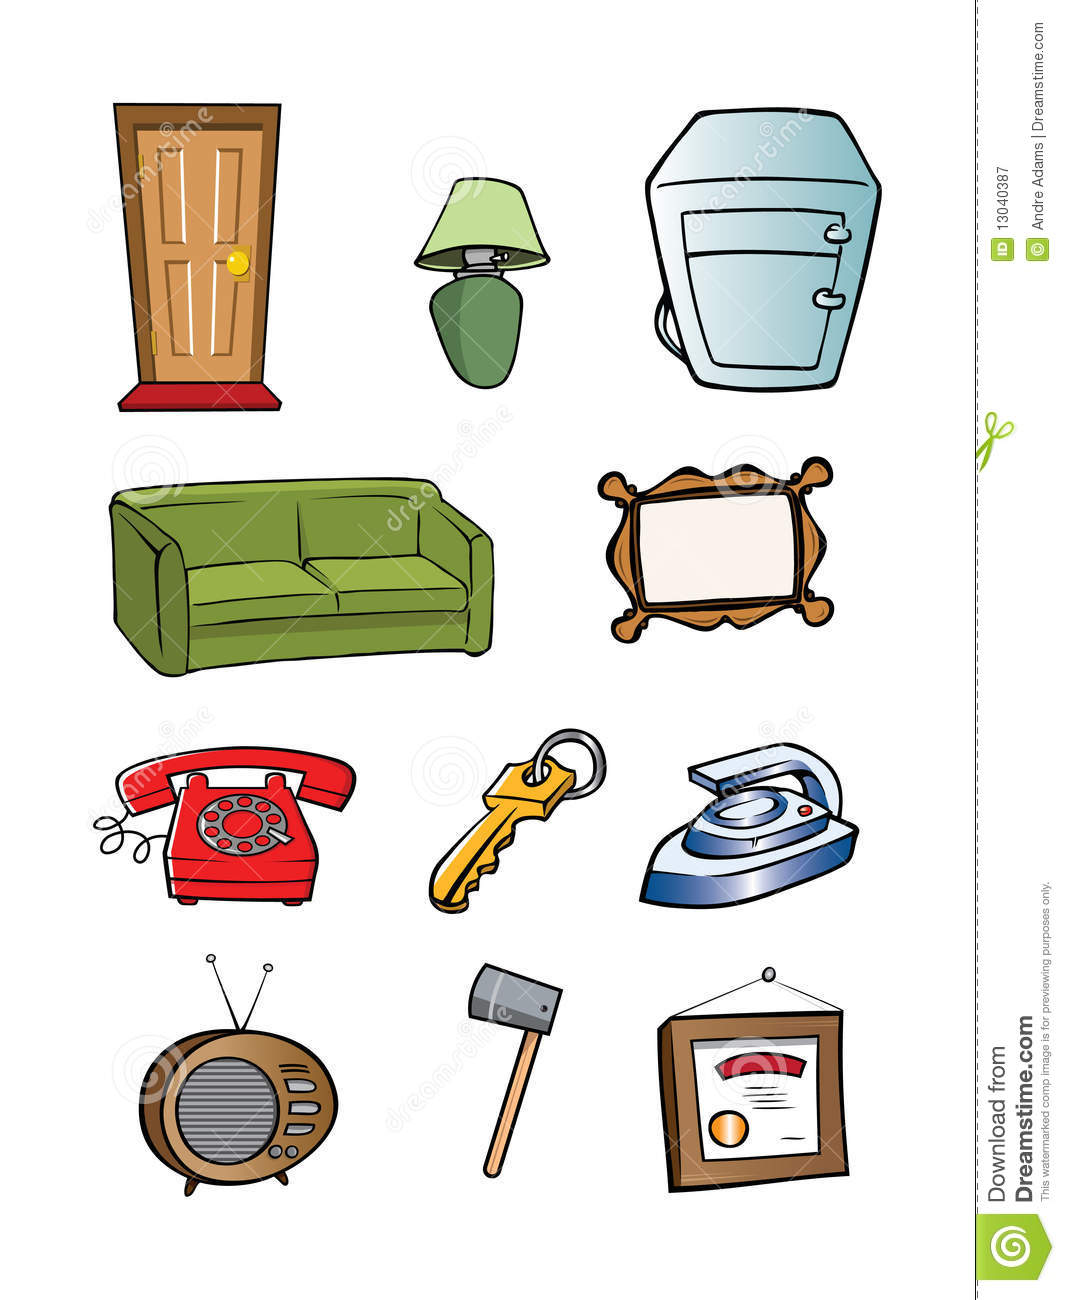 Random Household Objects Collection Stock Vector